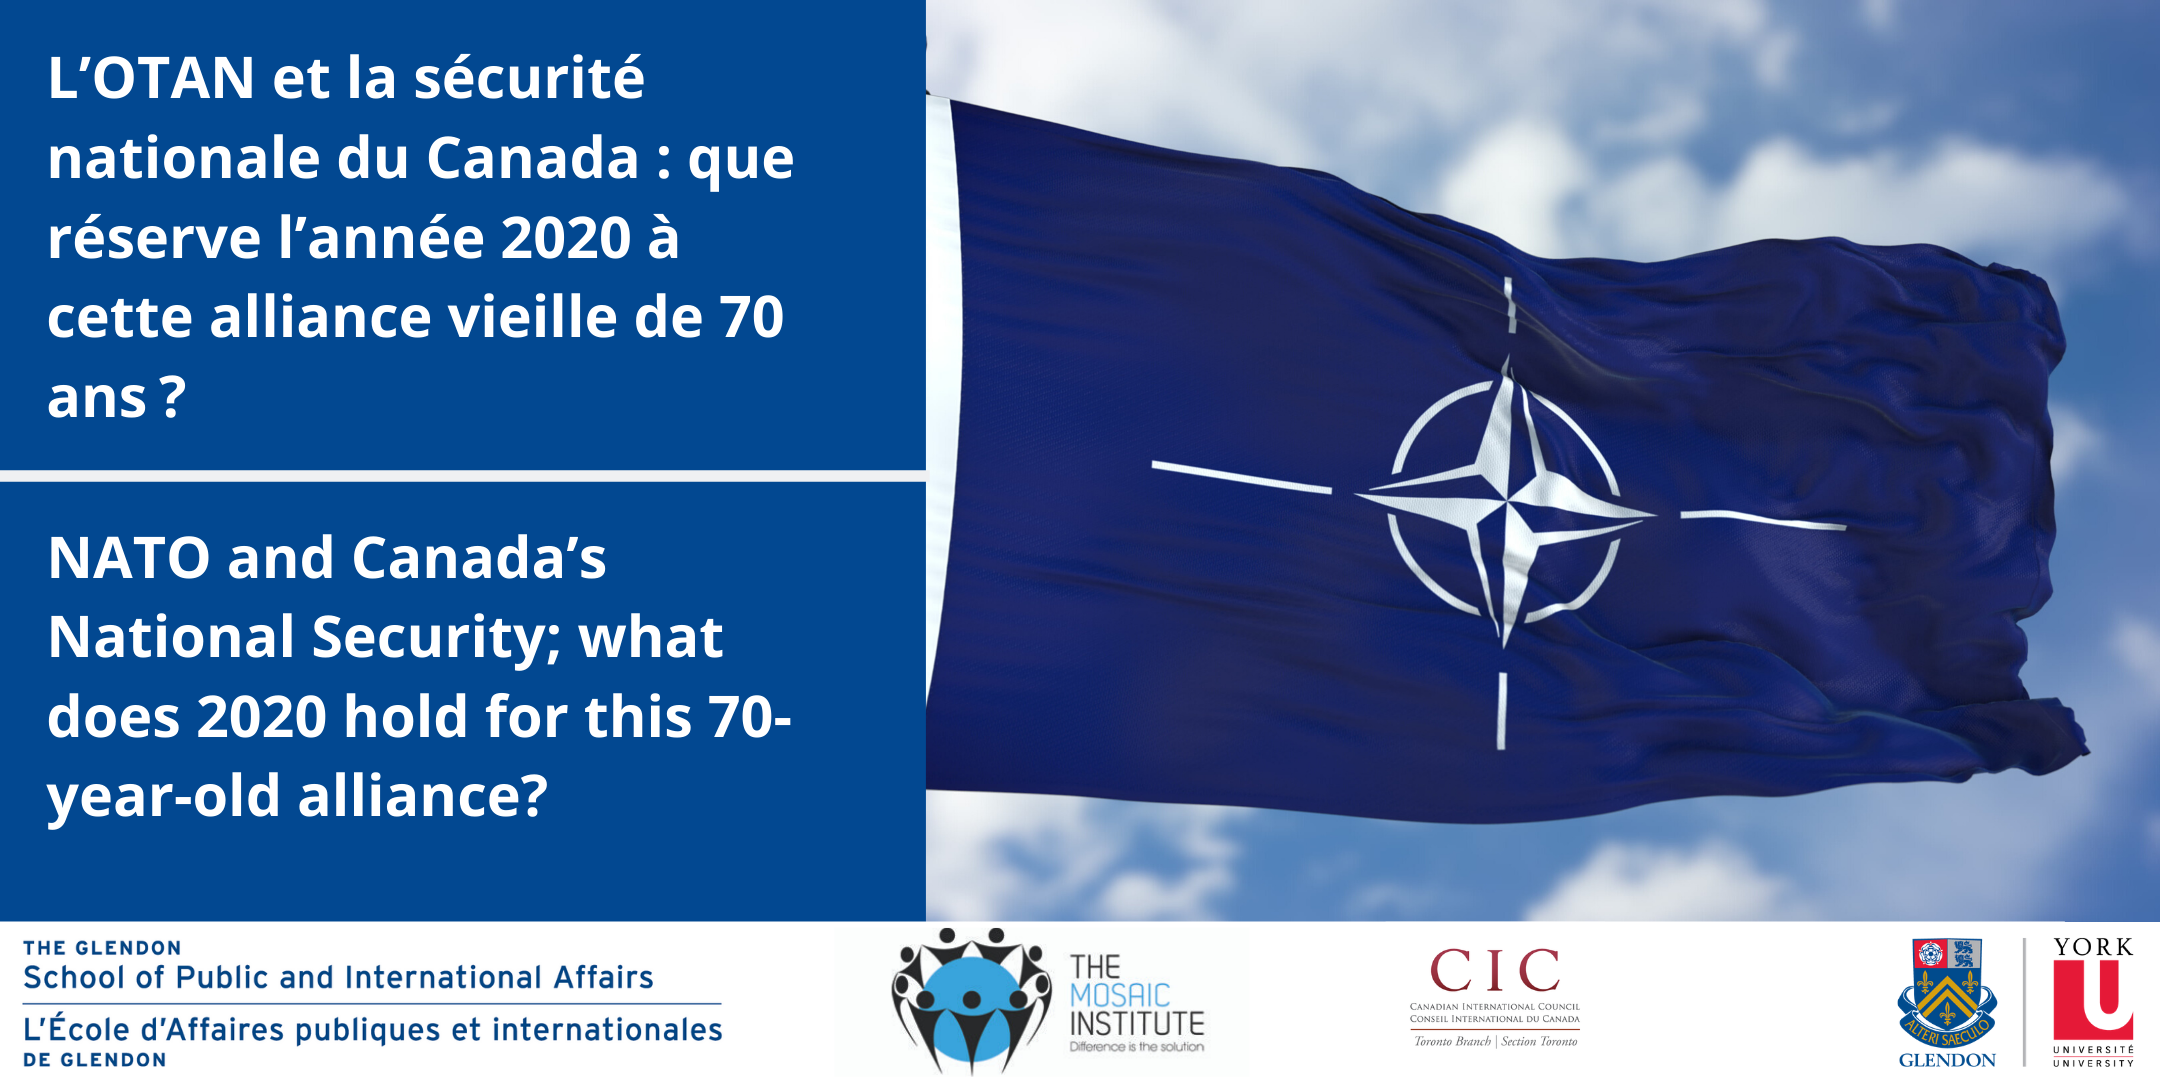 NATO and Canada's National Security; what does 2020 hold for this 70-year-old alliance? @ A300